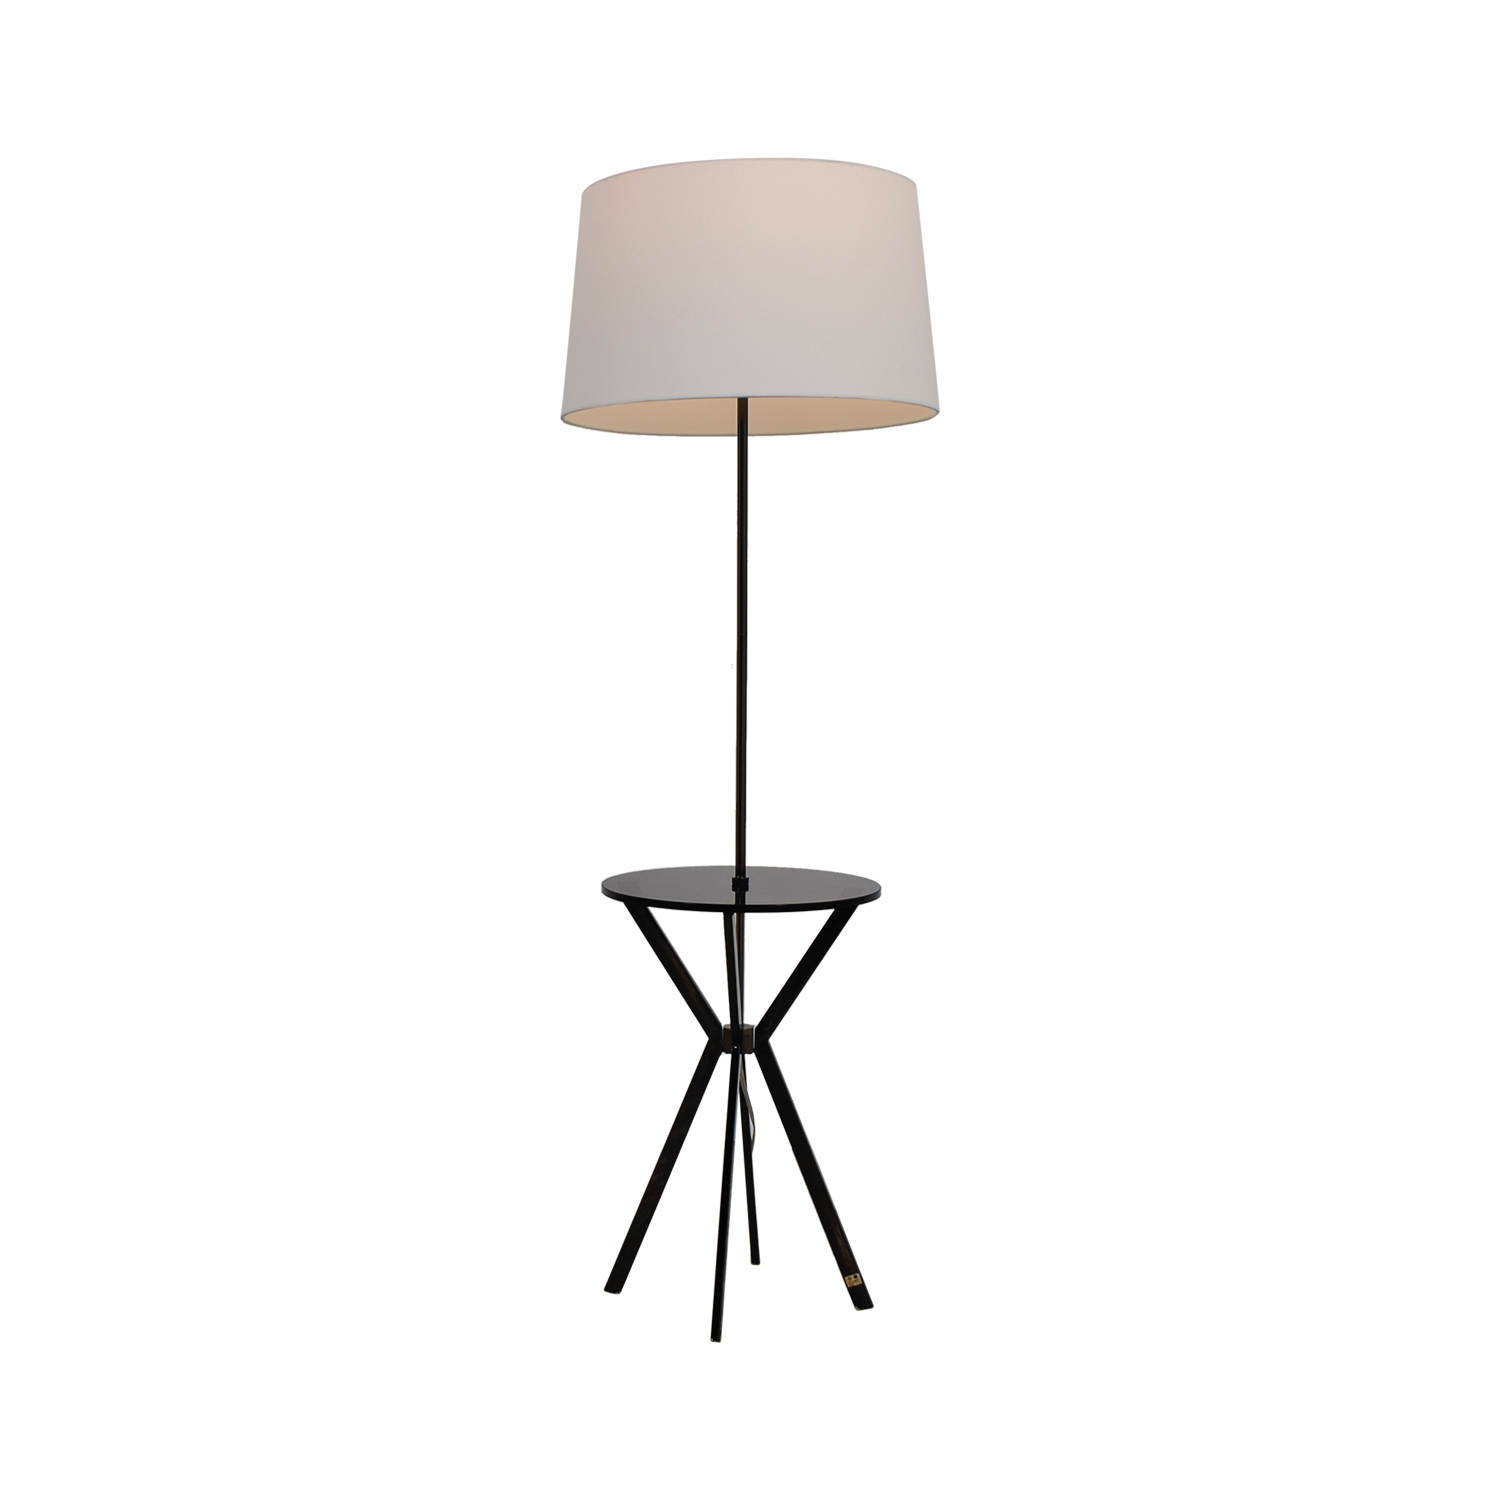 68 Off West Elm West Elm Floor Lamp With Table Attached Decor